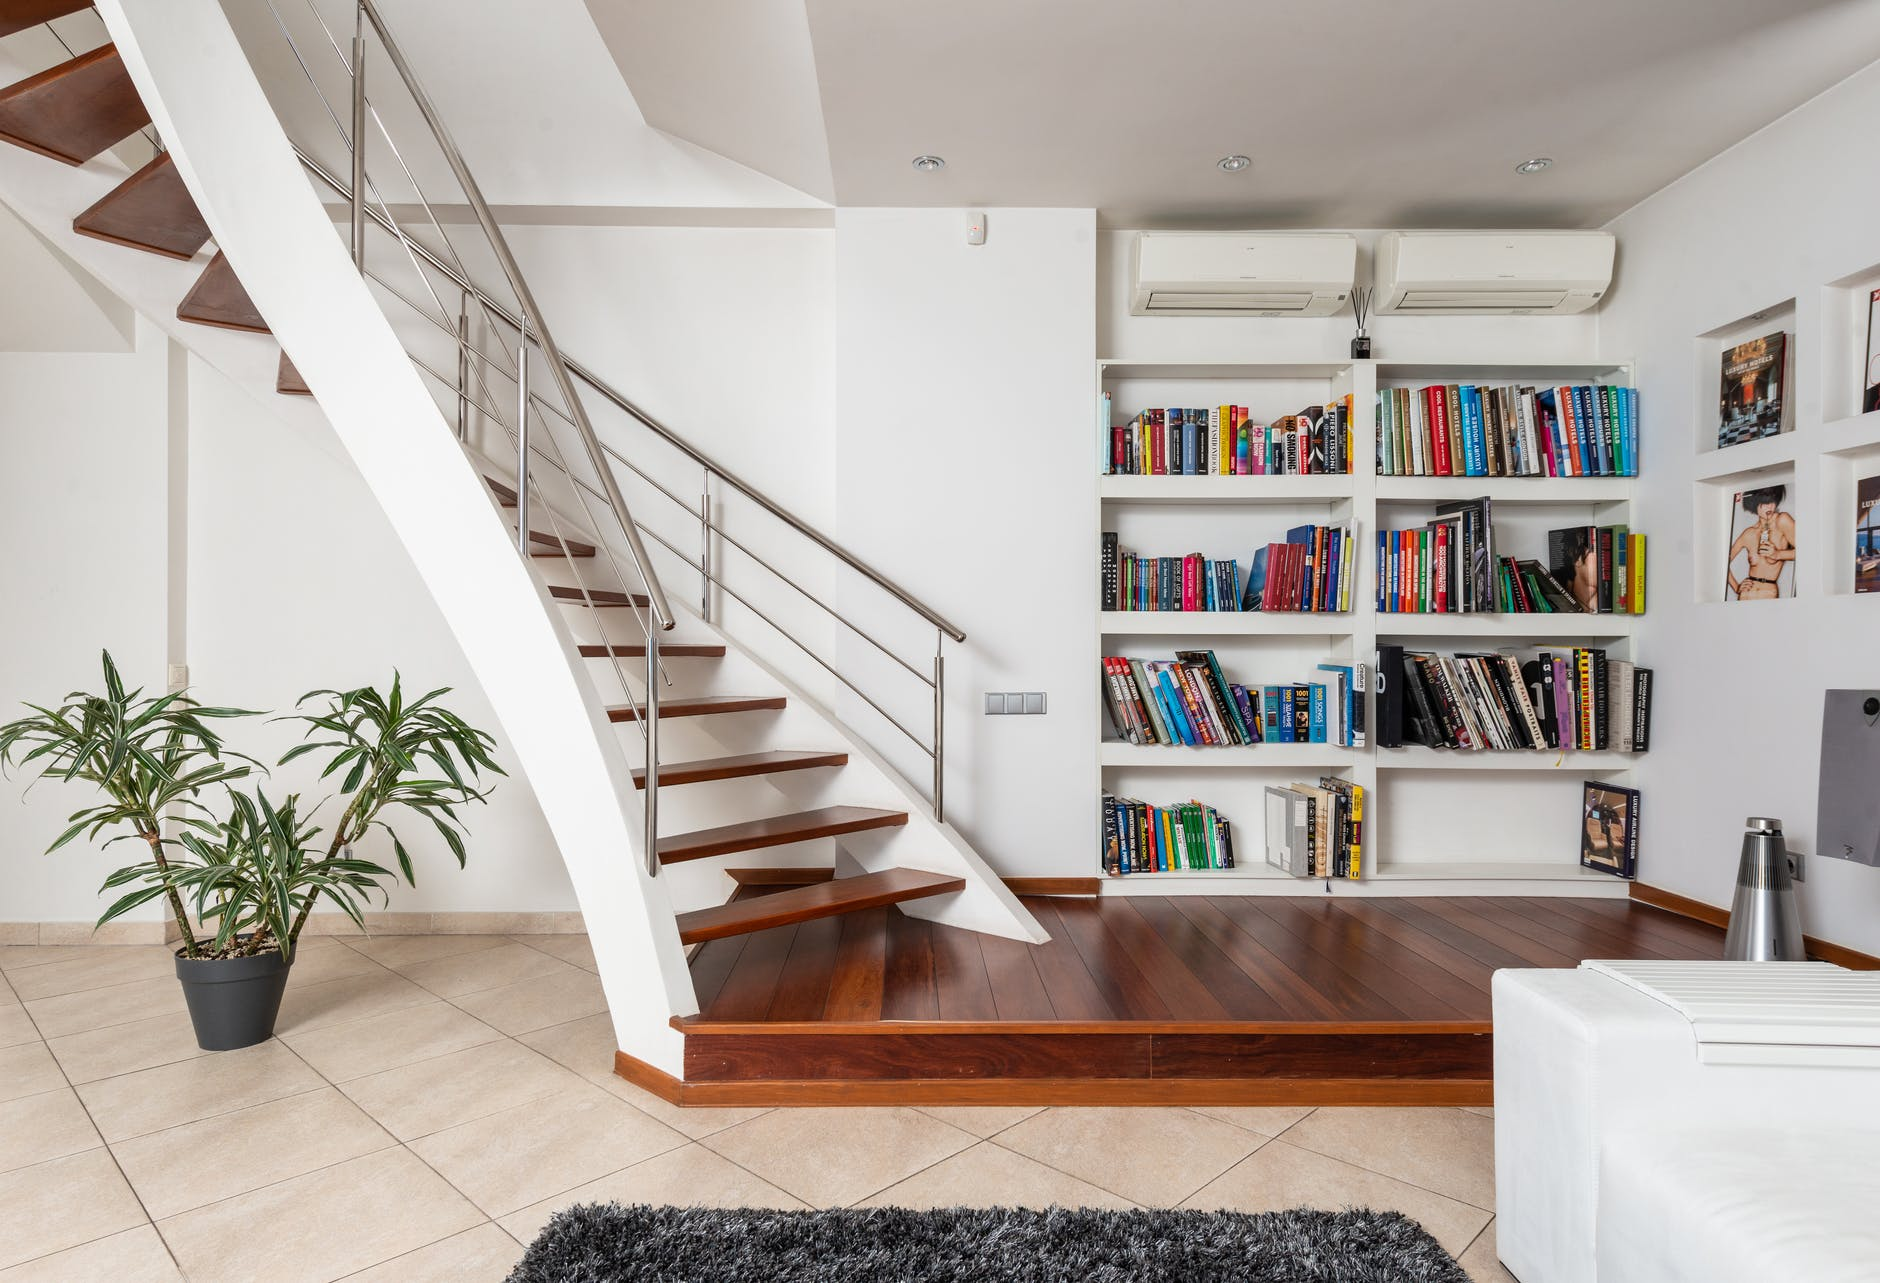 collection of books against modern stairs in house